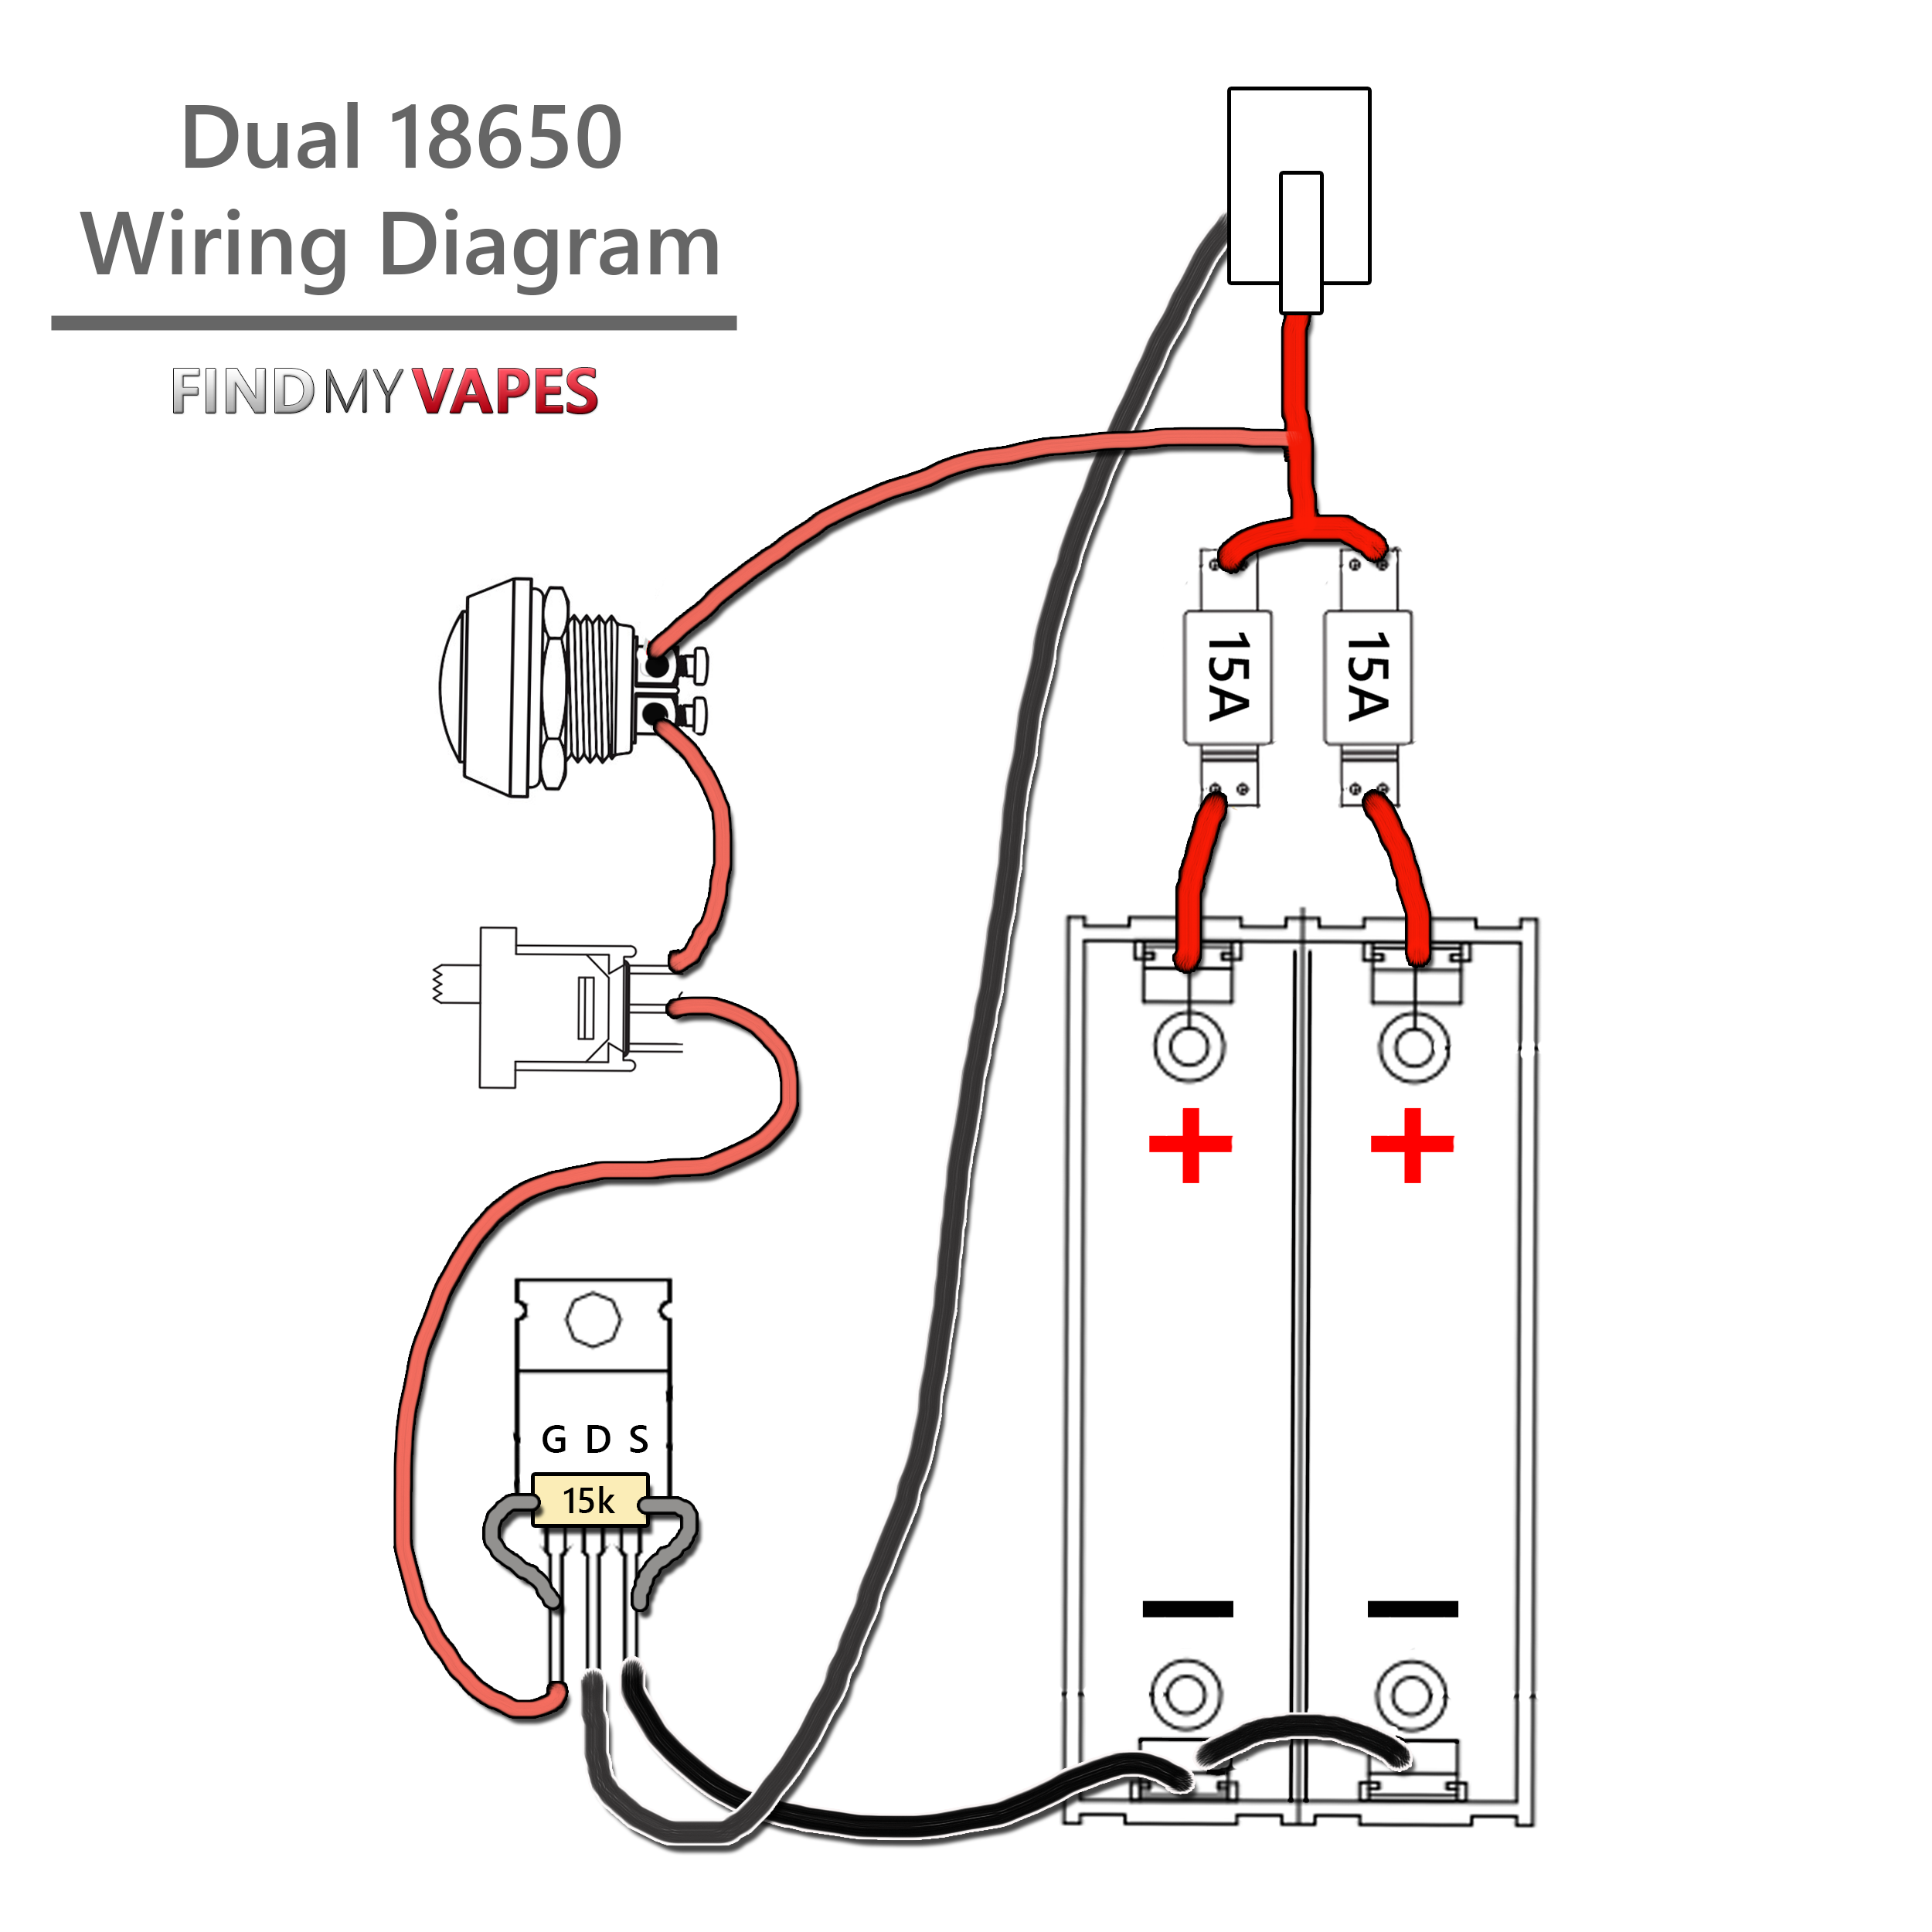 18650 Battery Series Wiring Diagram Automotive Diagrams Led Solar Panel Wire Yihi Simple Schema Schematic